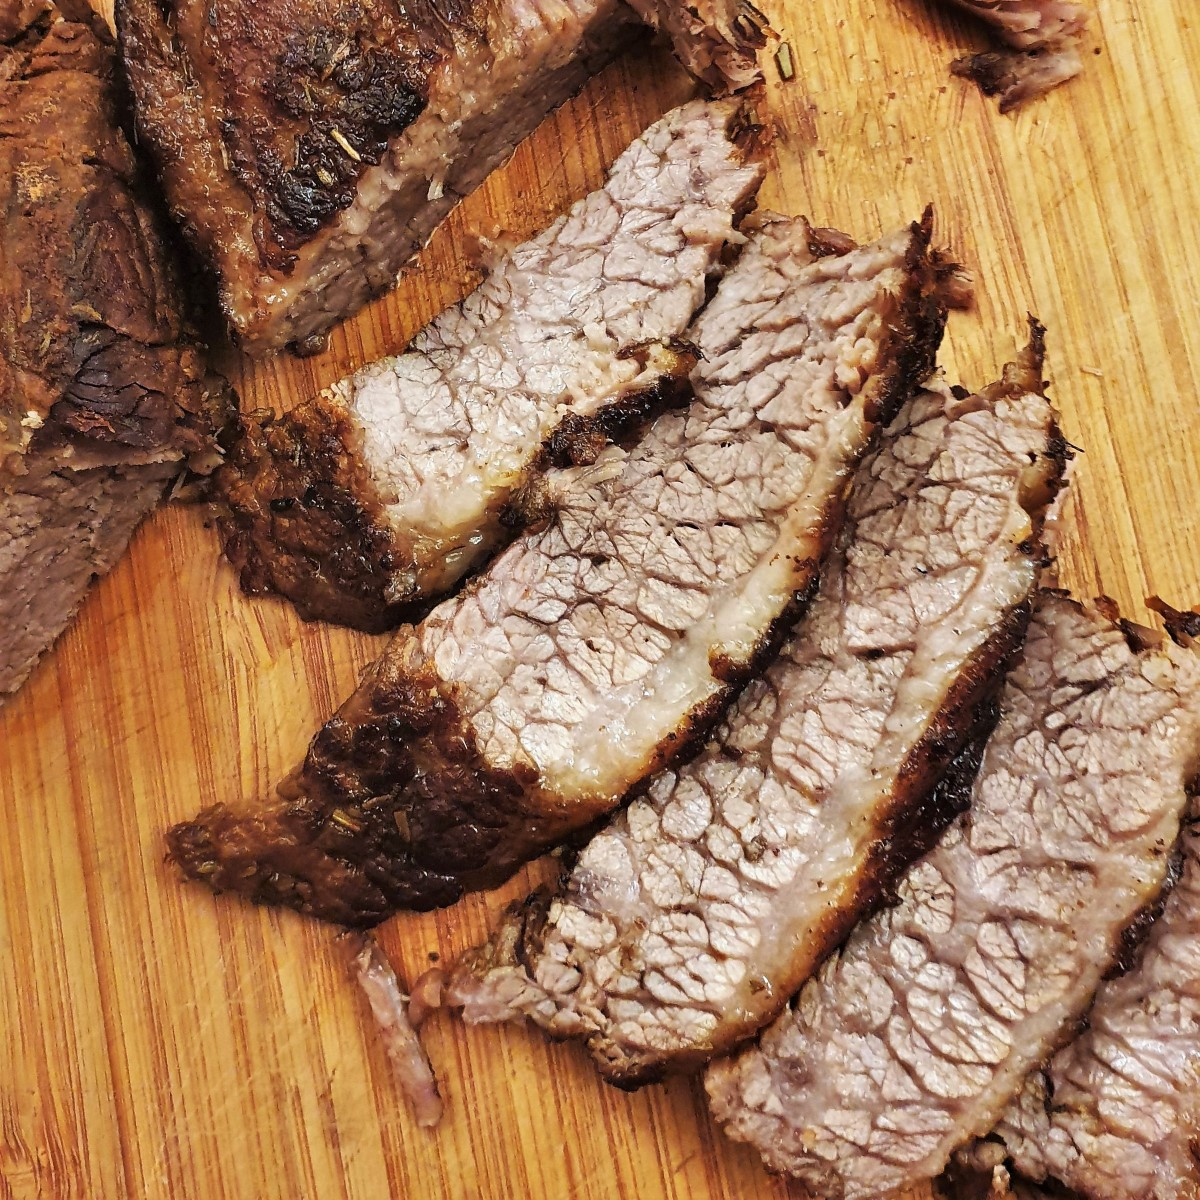 Slices of slow-roasted brisket on a wooden board.